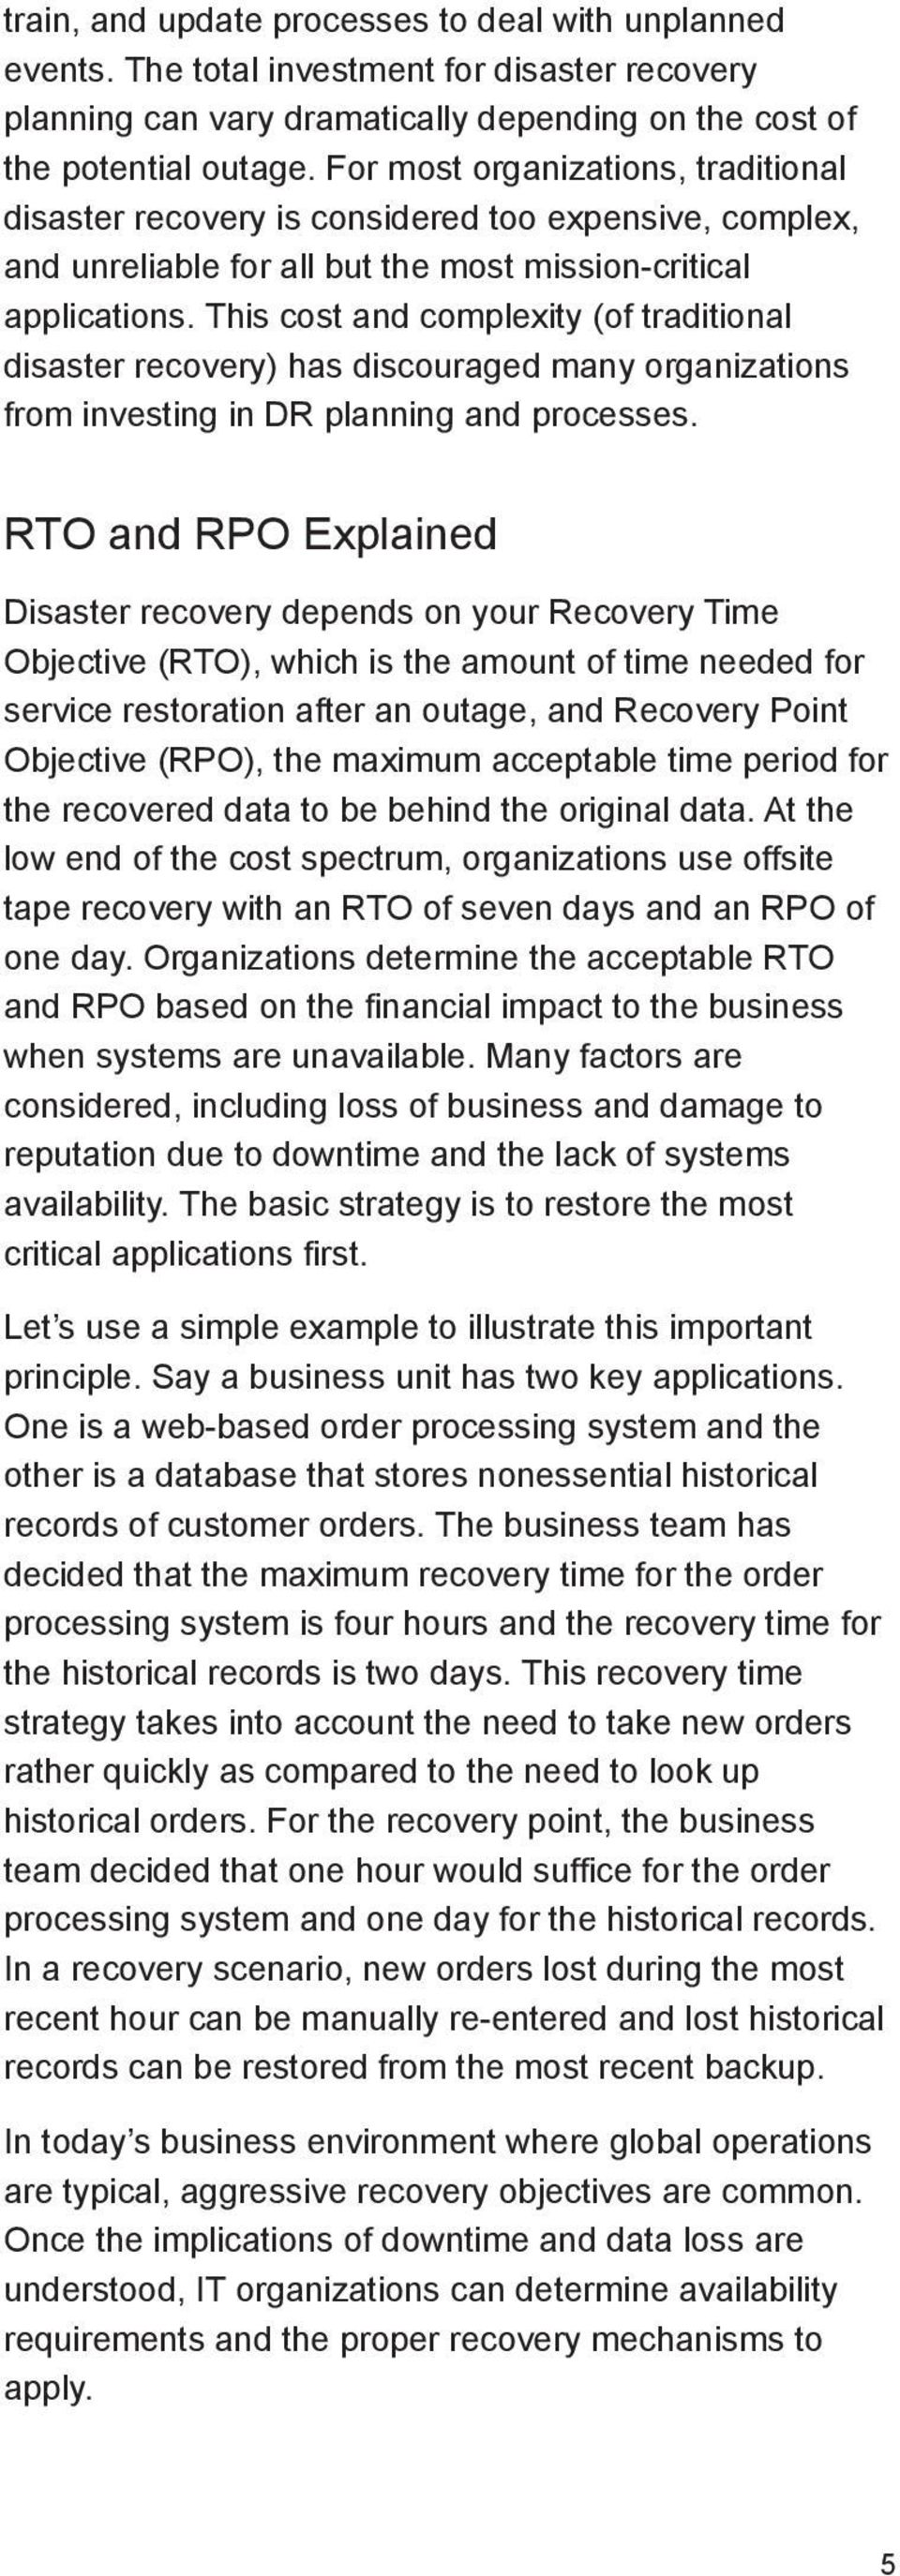 This cost and complexity (of traditional disaster recovery) has discouraged many organizations from investing in DR planning and processes.